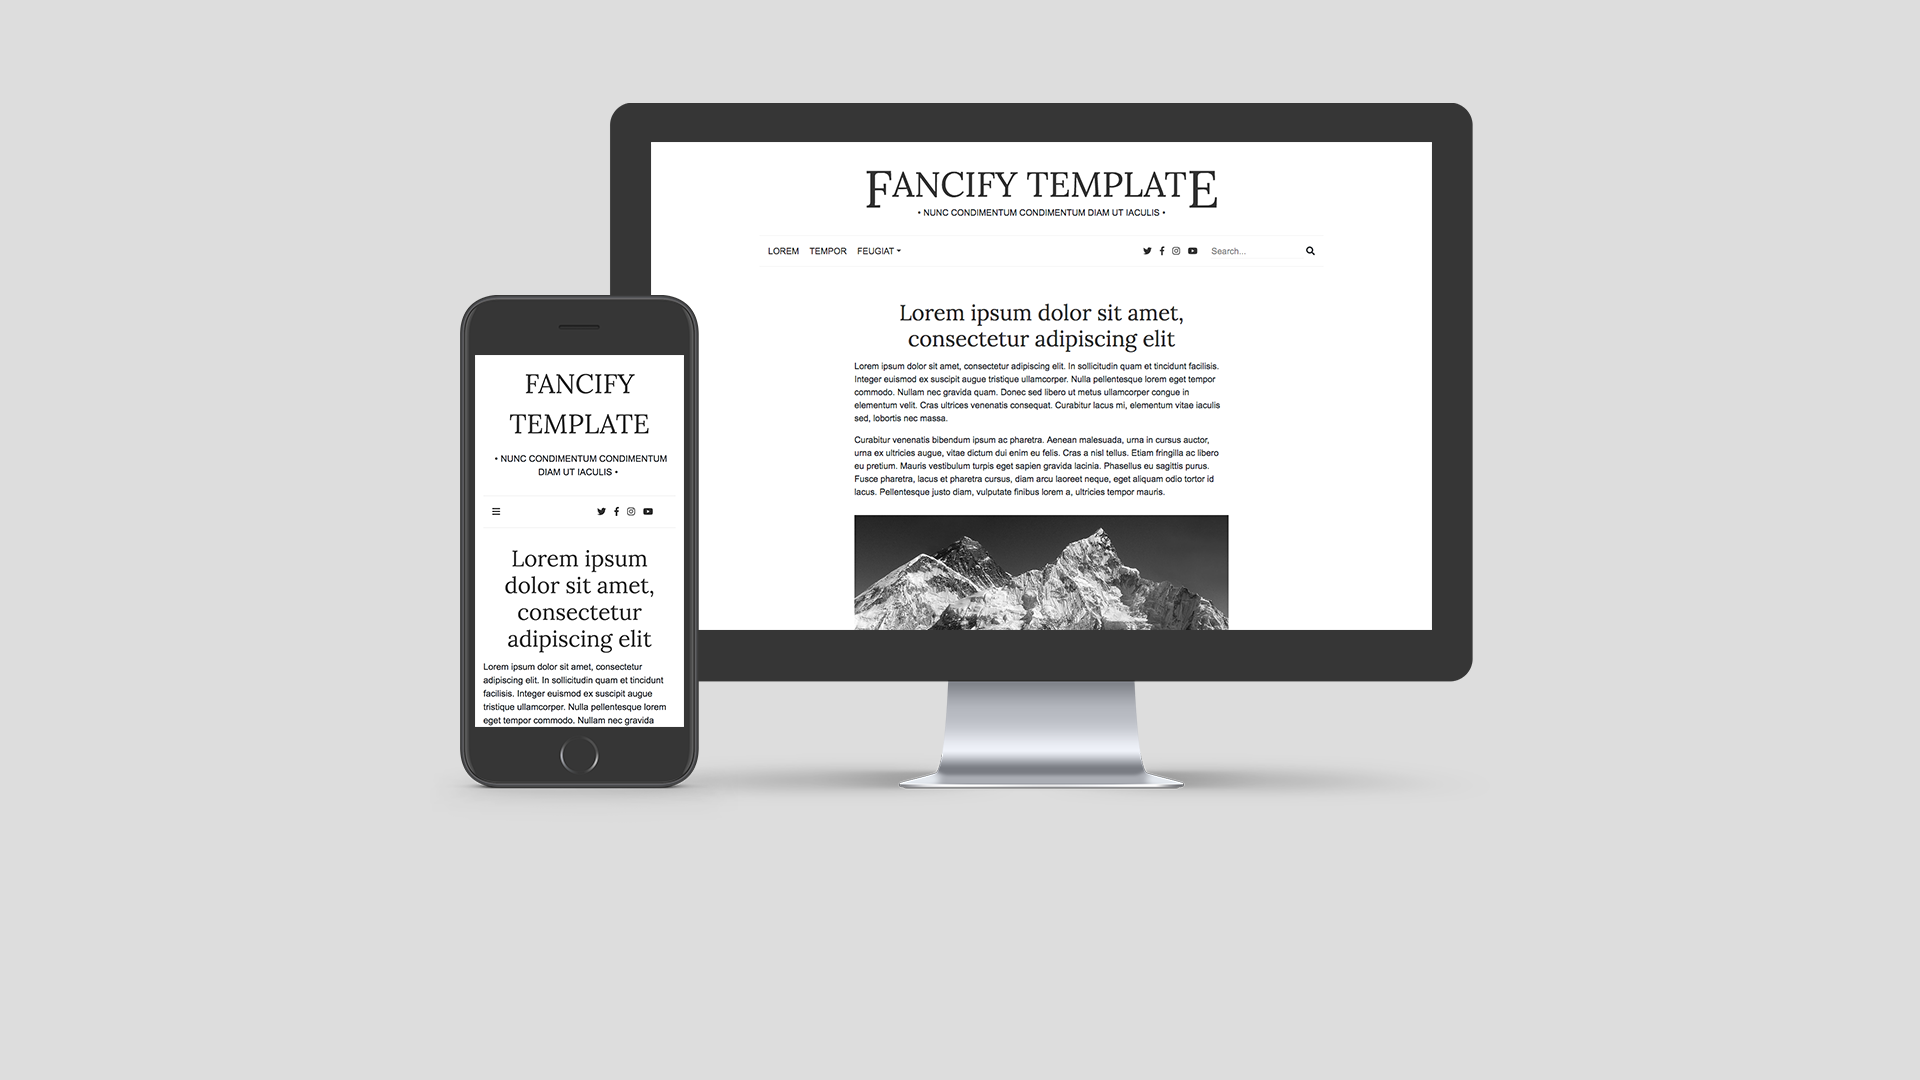 Fancify website template